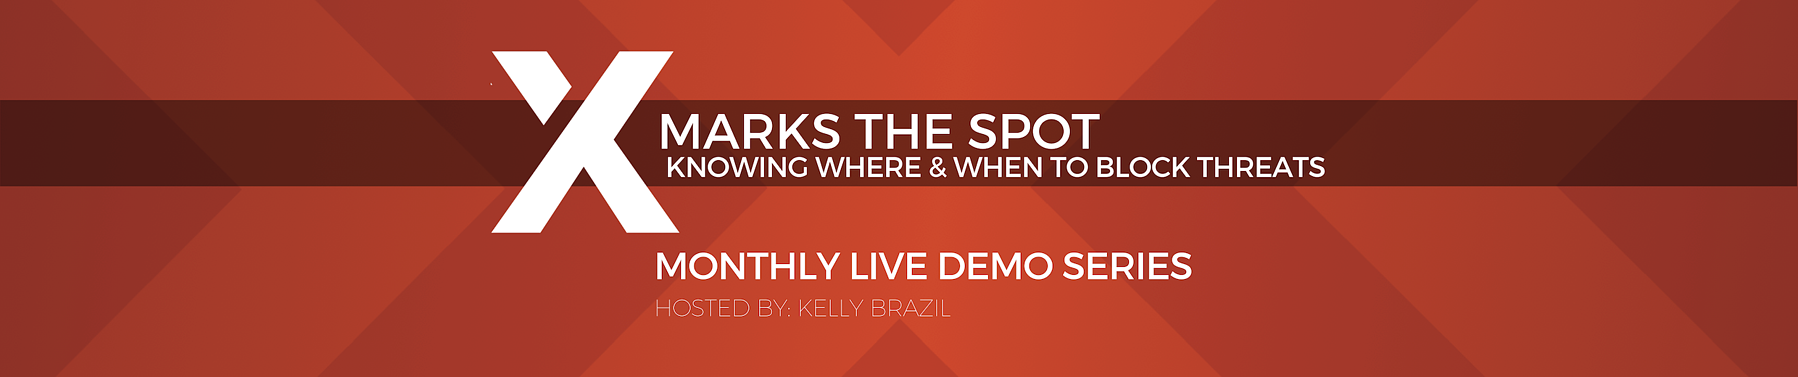 X Marks the Spot | Live Demo Series